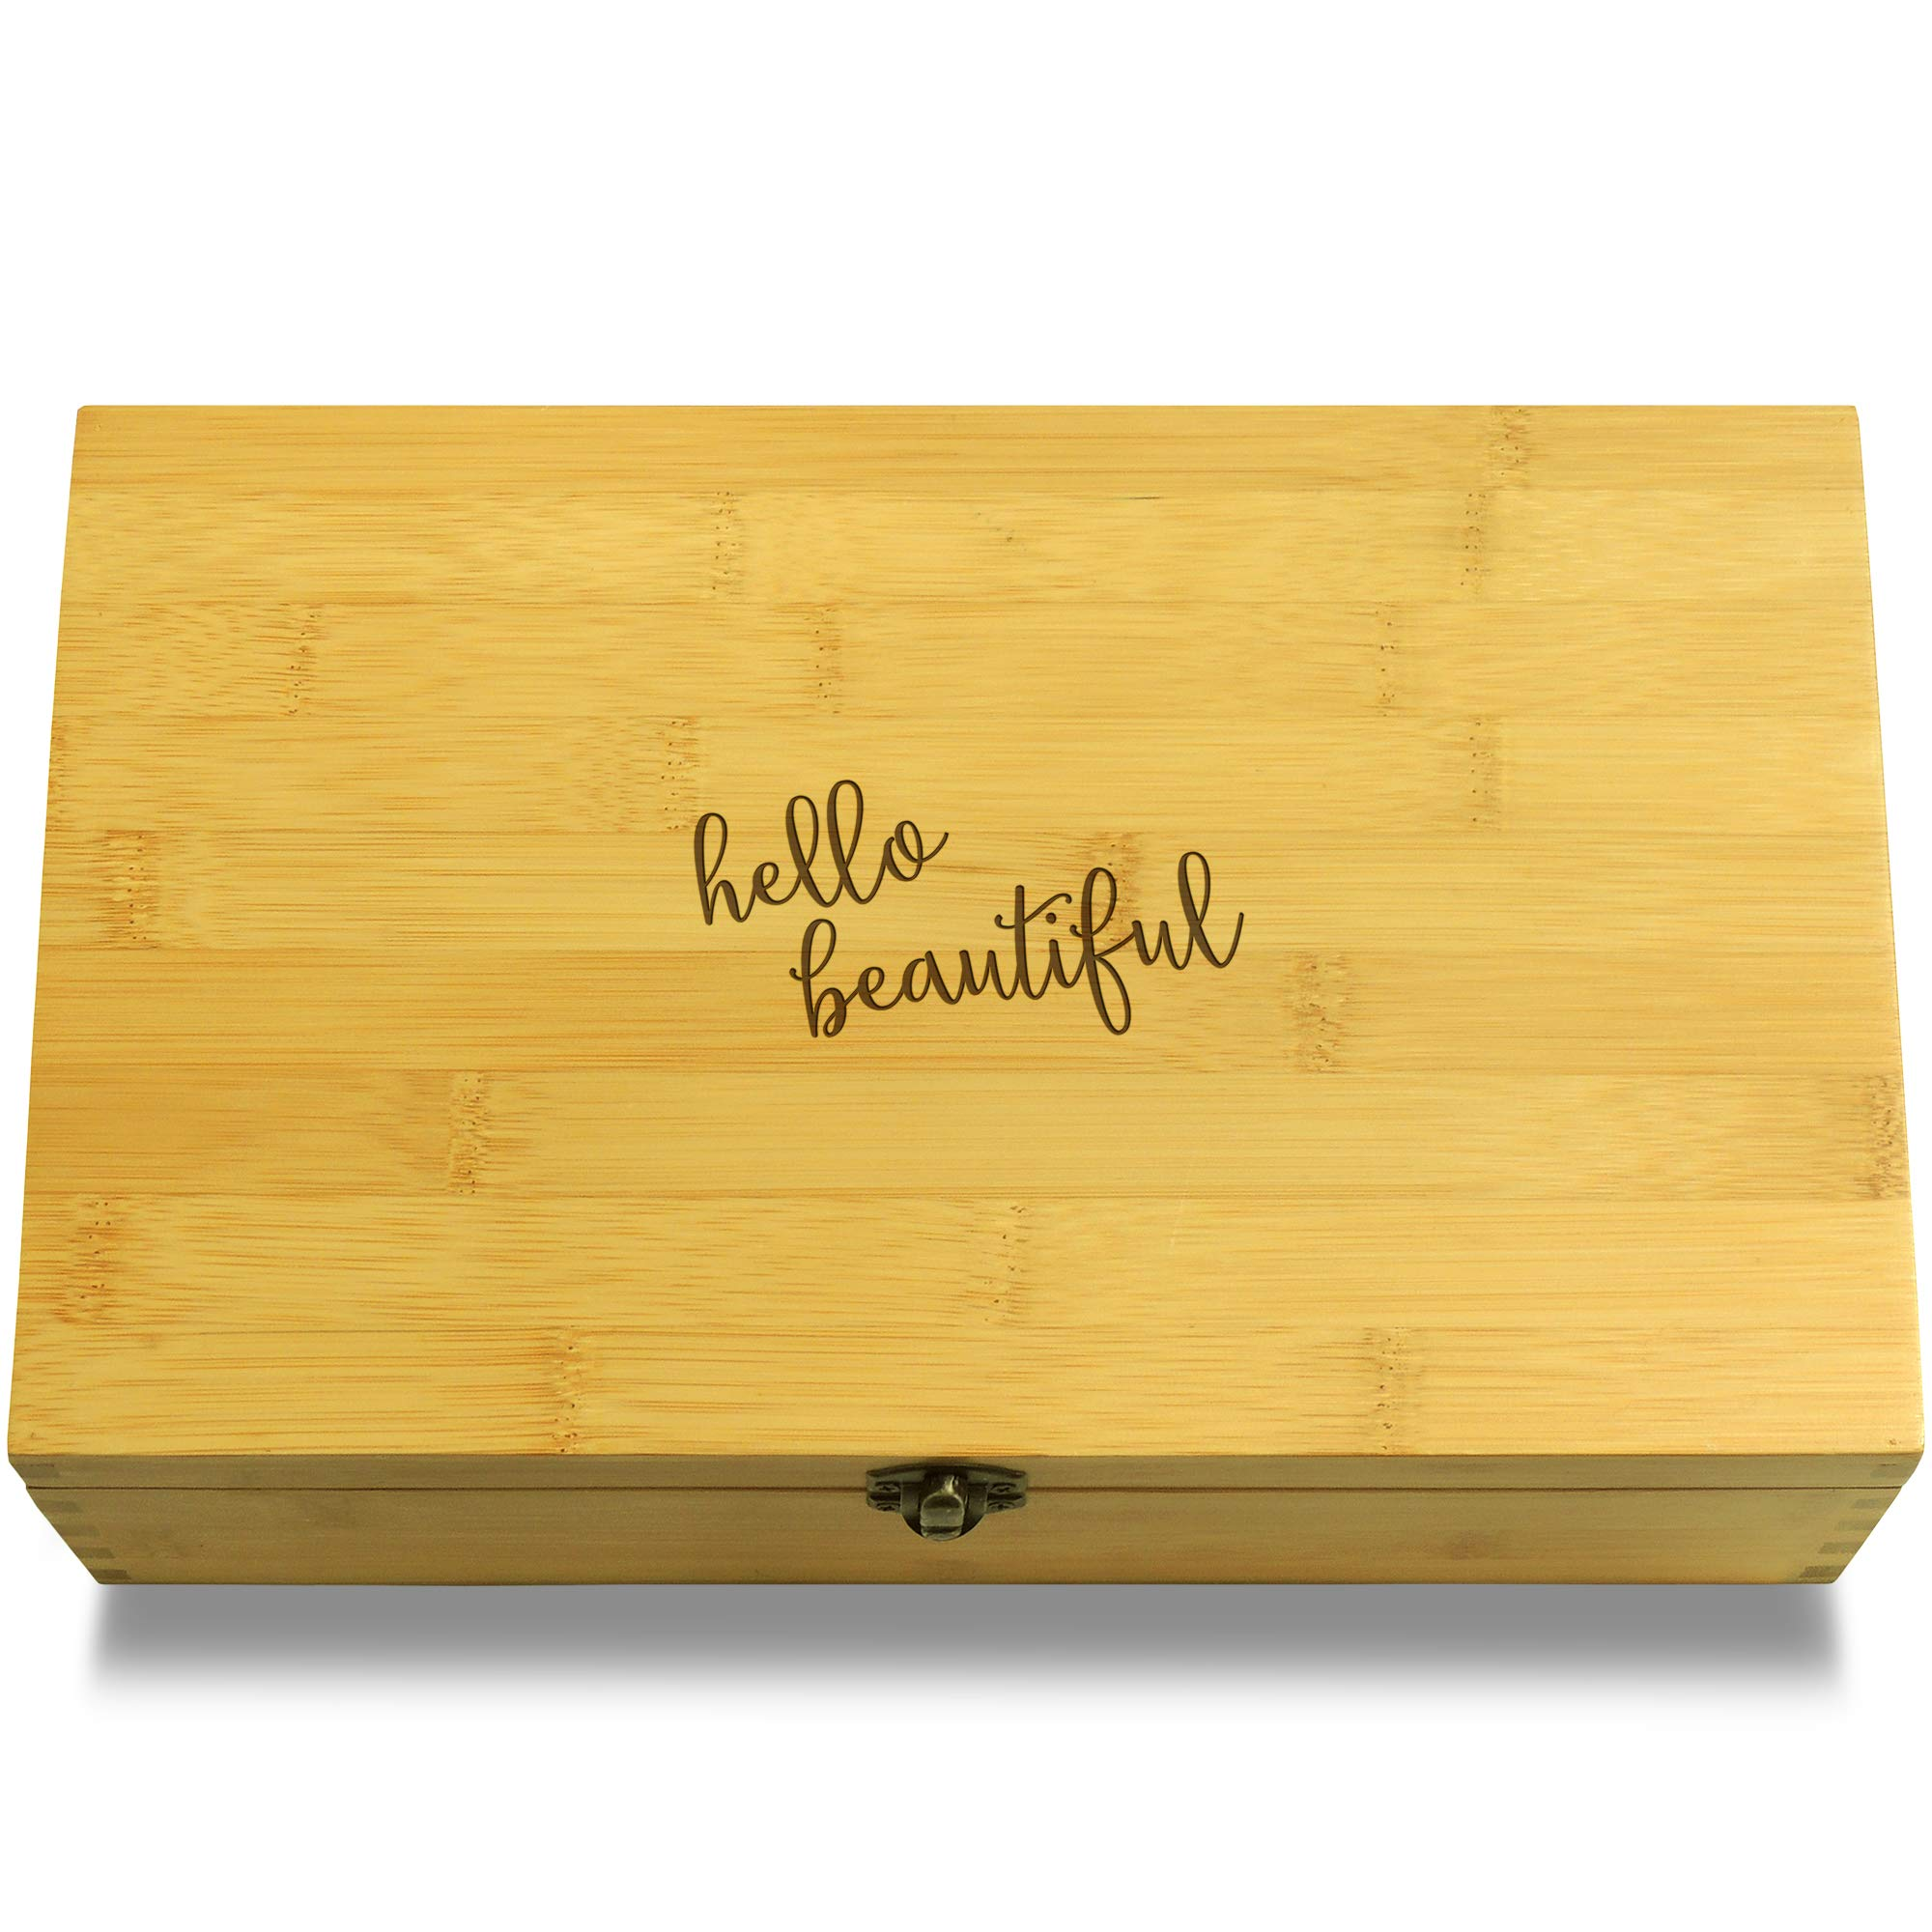 Cookbook People Perfect Makeup Lady Cosmetics Multikeep Box - Memento Sustainable Bamboo Adjustable Organizer